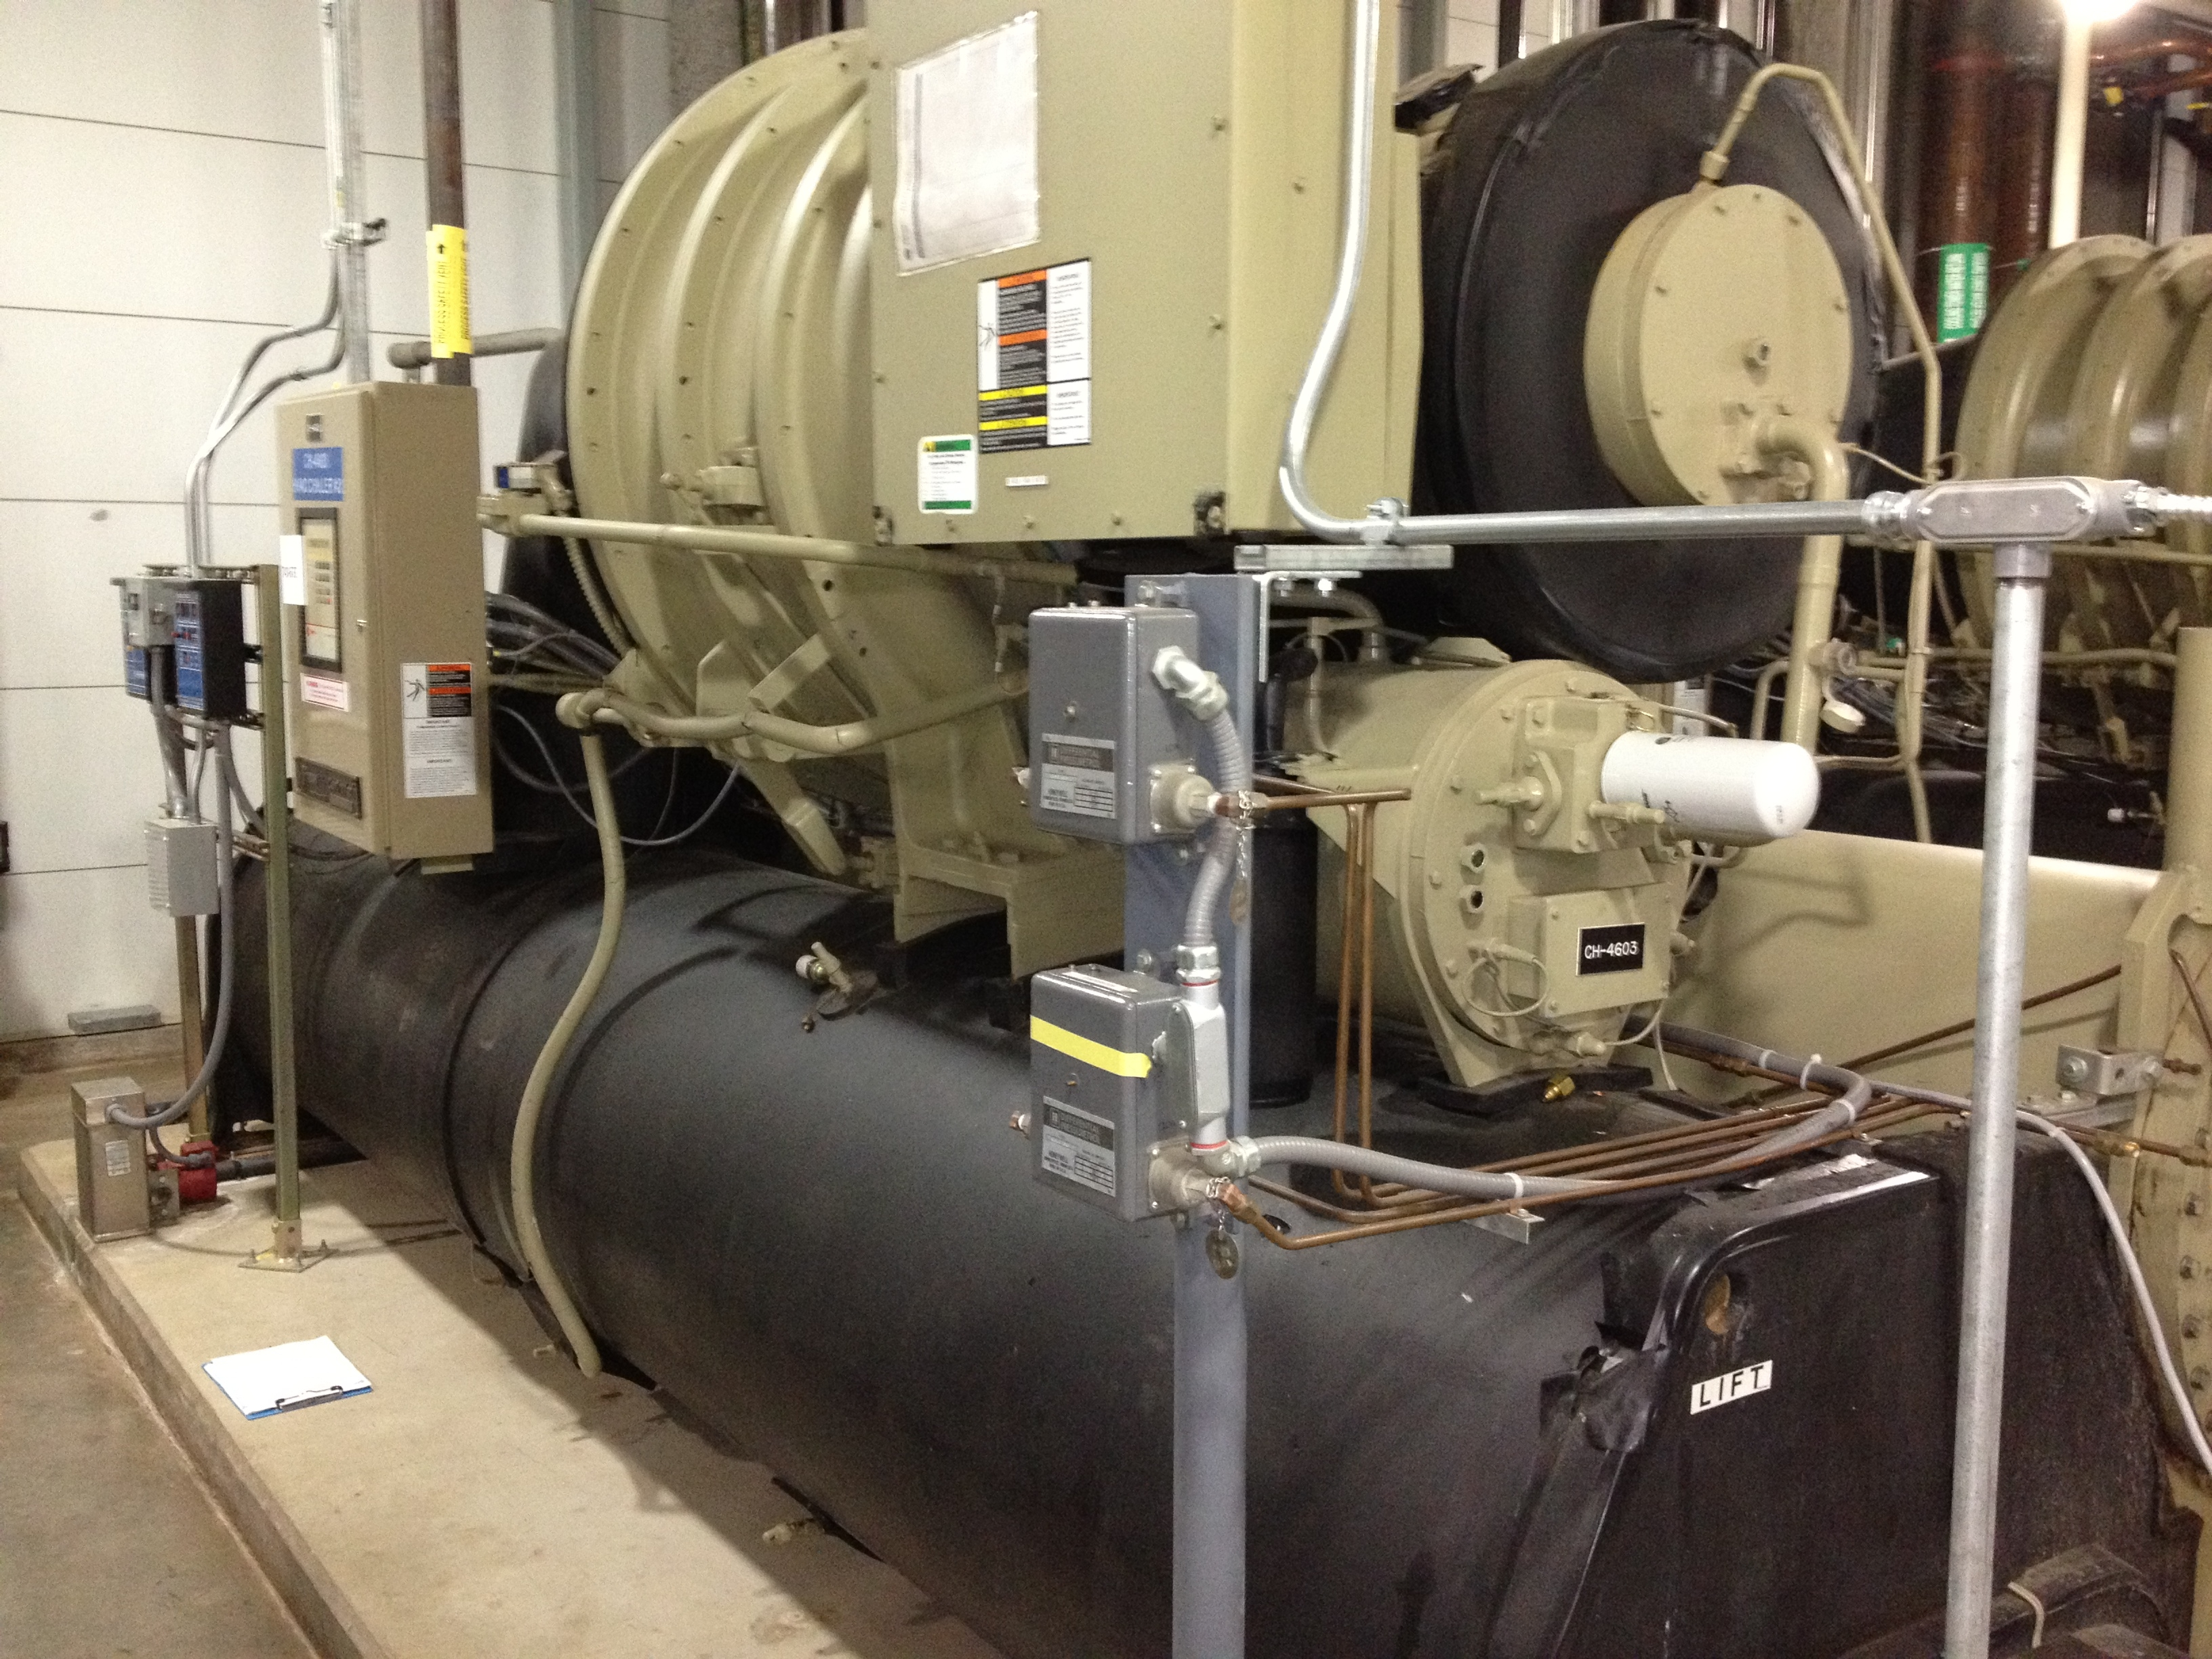 Home » Equipment » Chillers » Chillers » 450 Ton Trane Chiller #A99F22